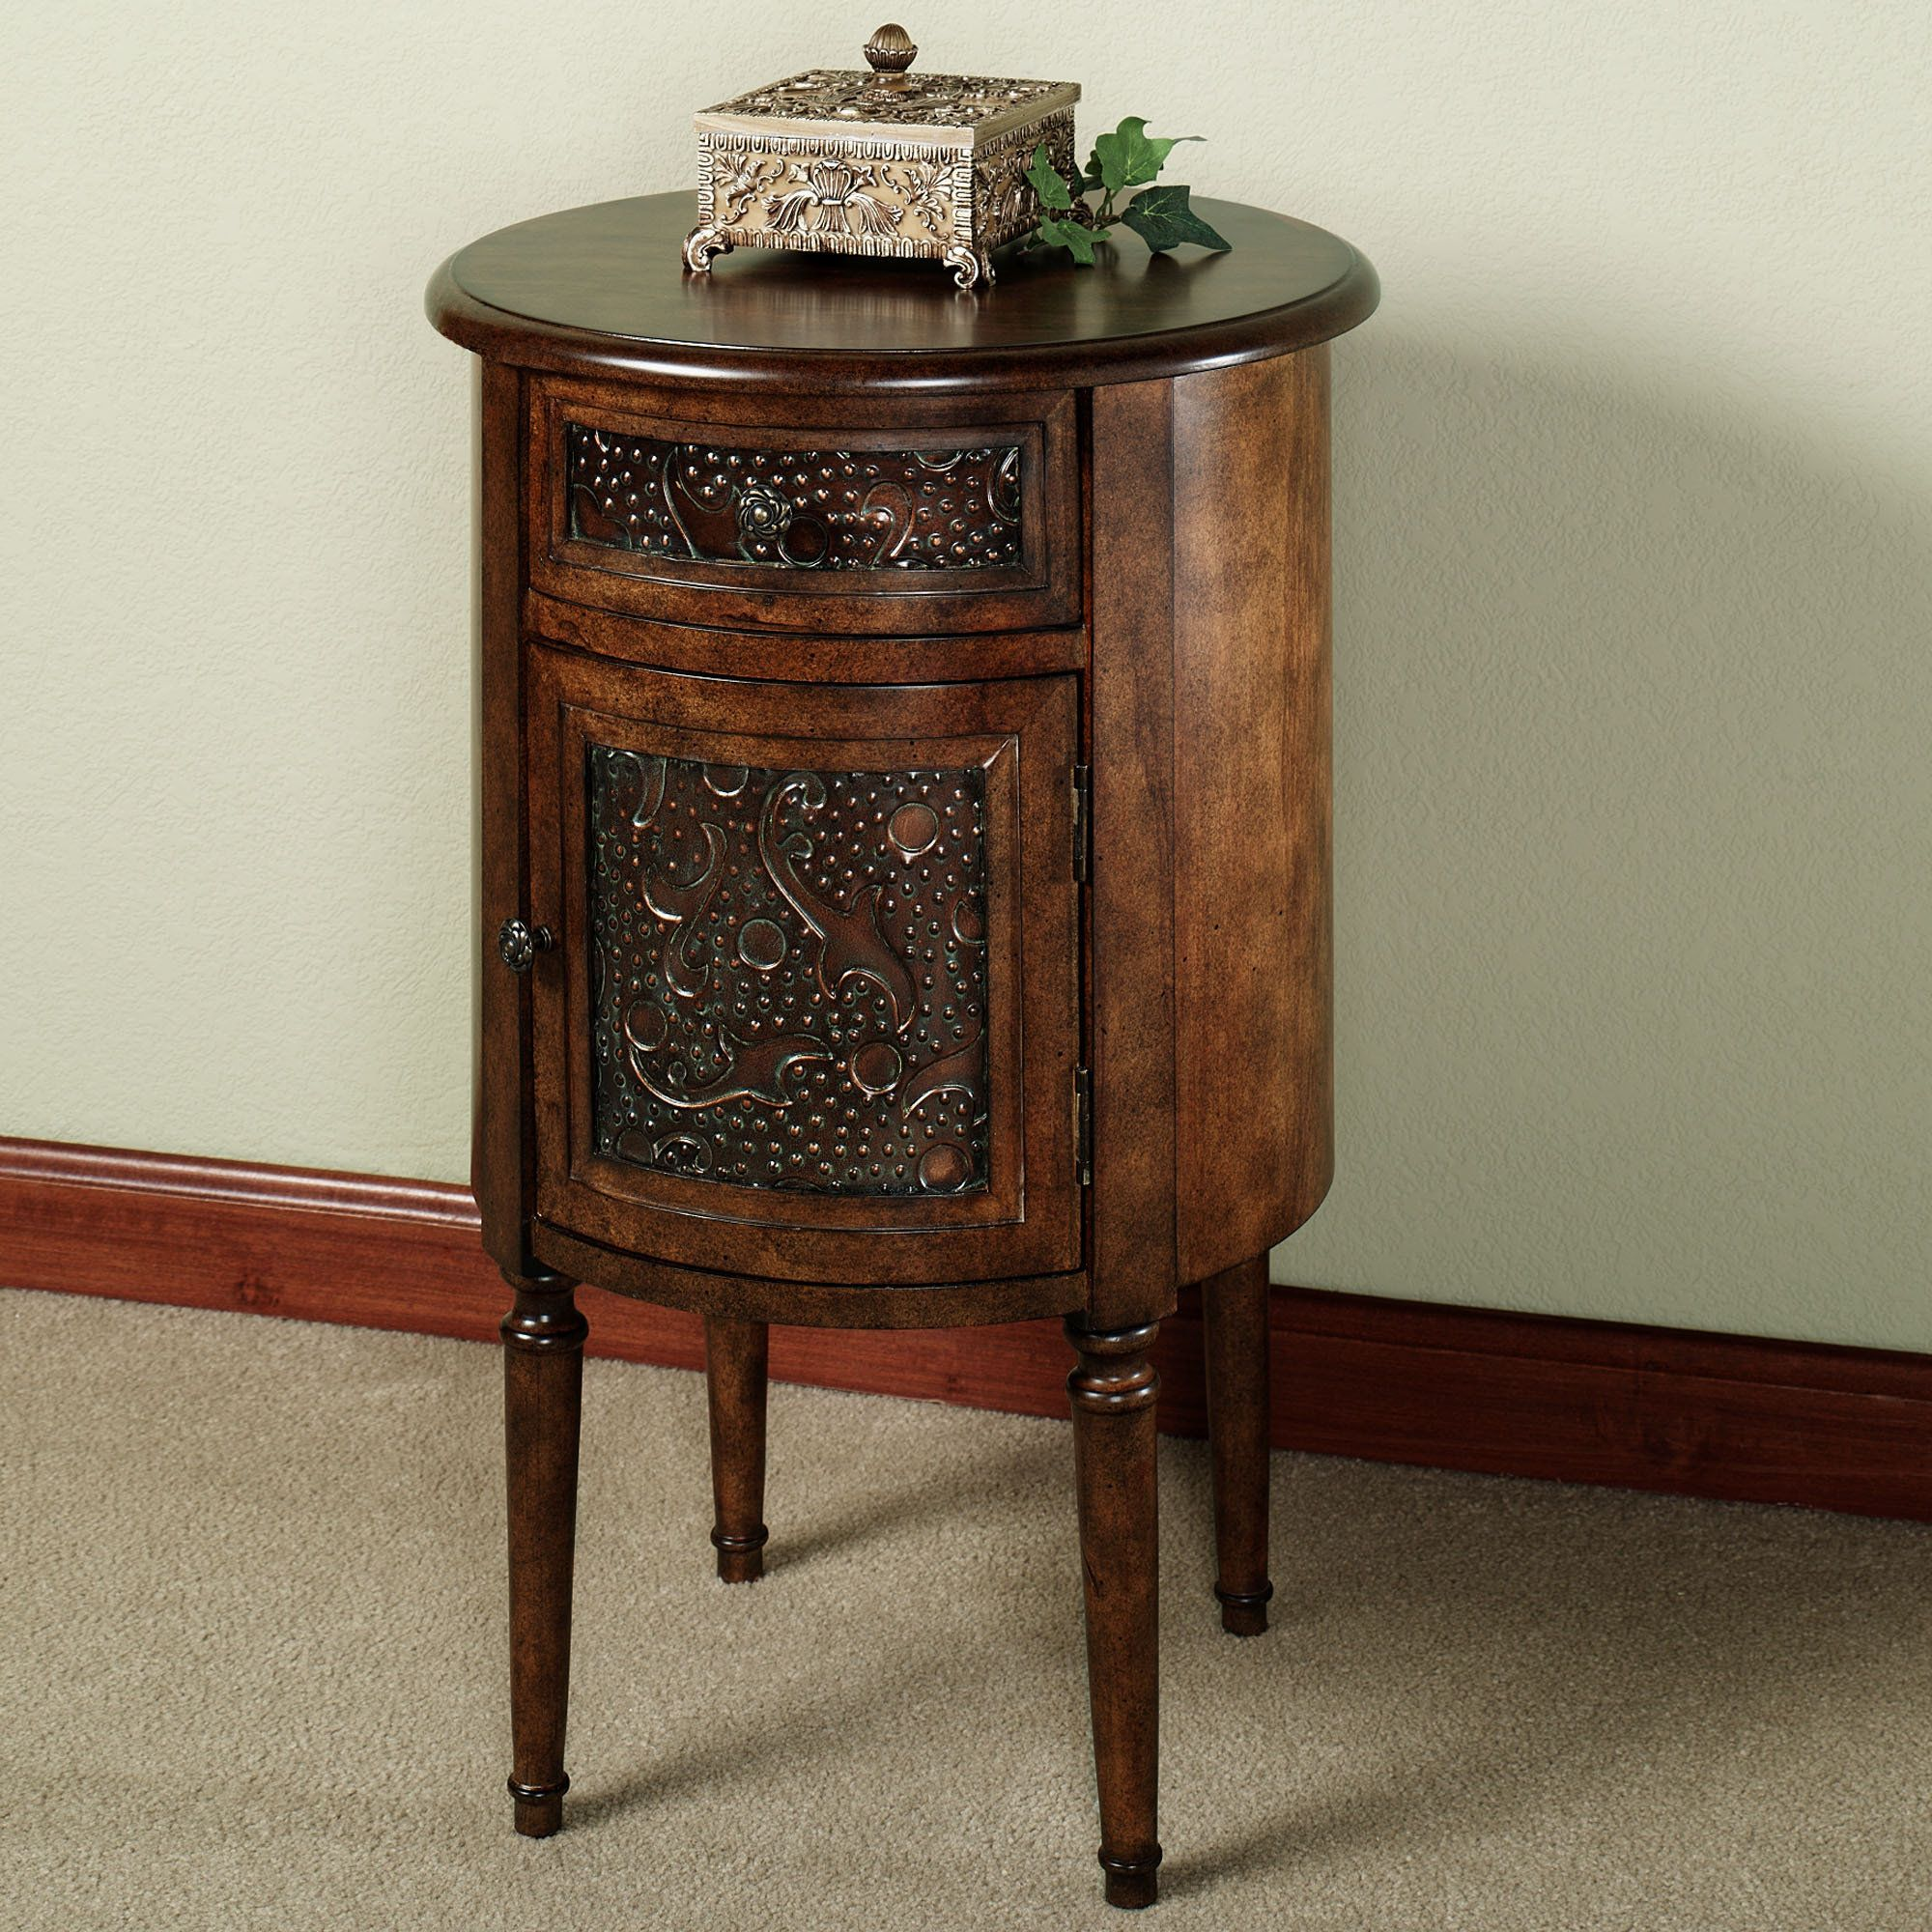 The Lombardy Round Storage Accent Table Will Grace Any Area Of Your Home With Elegance Wooden Accent Table Has An English Walnut Finish And Is Accented